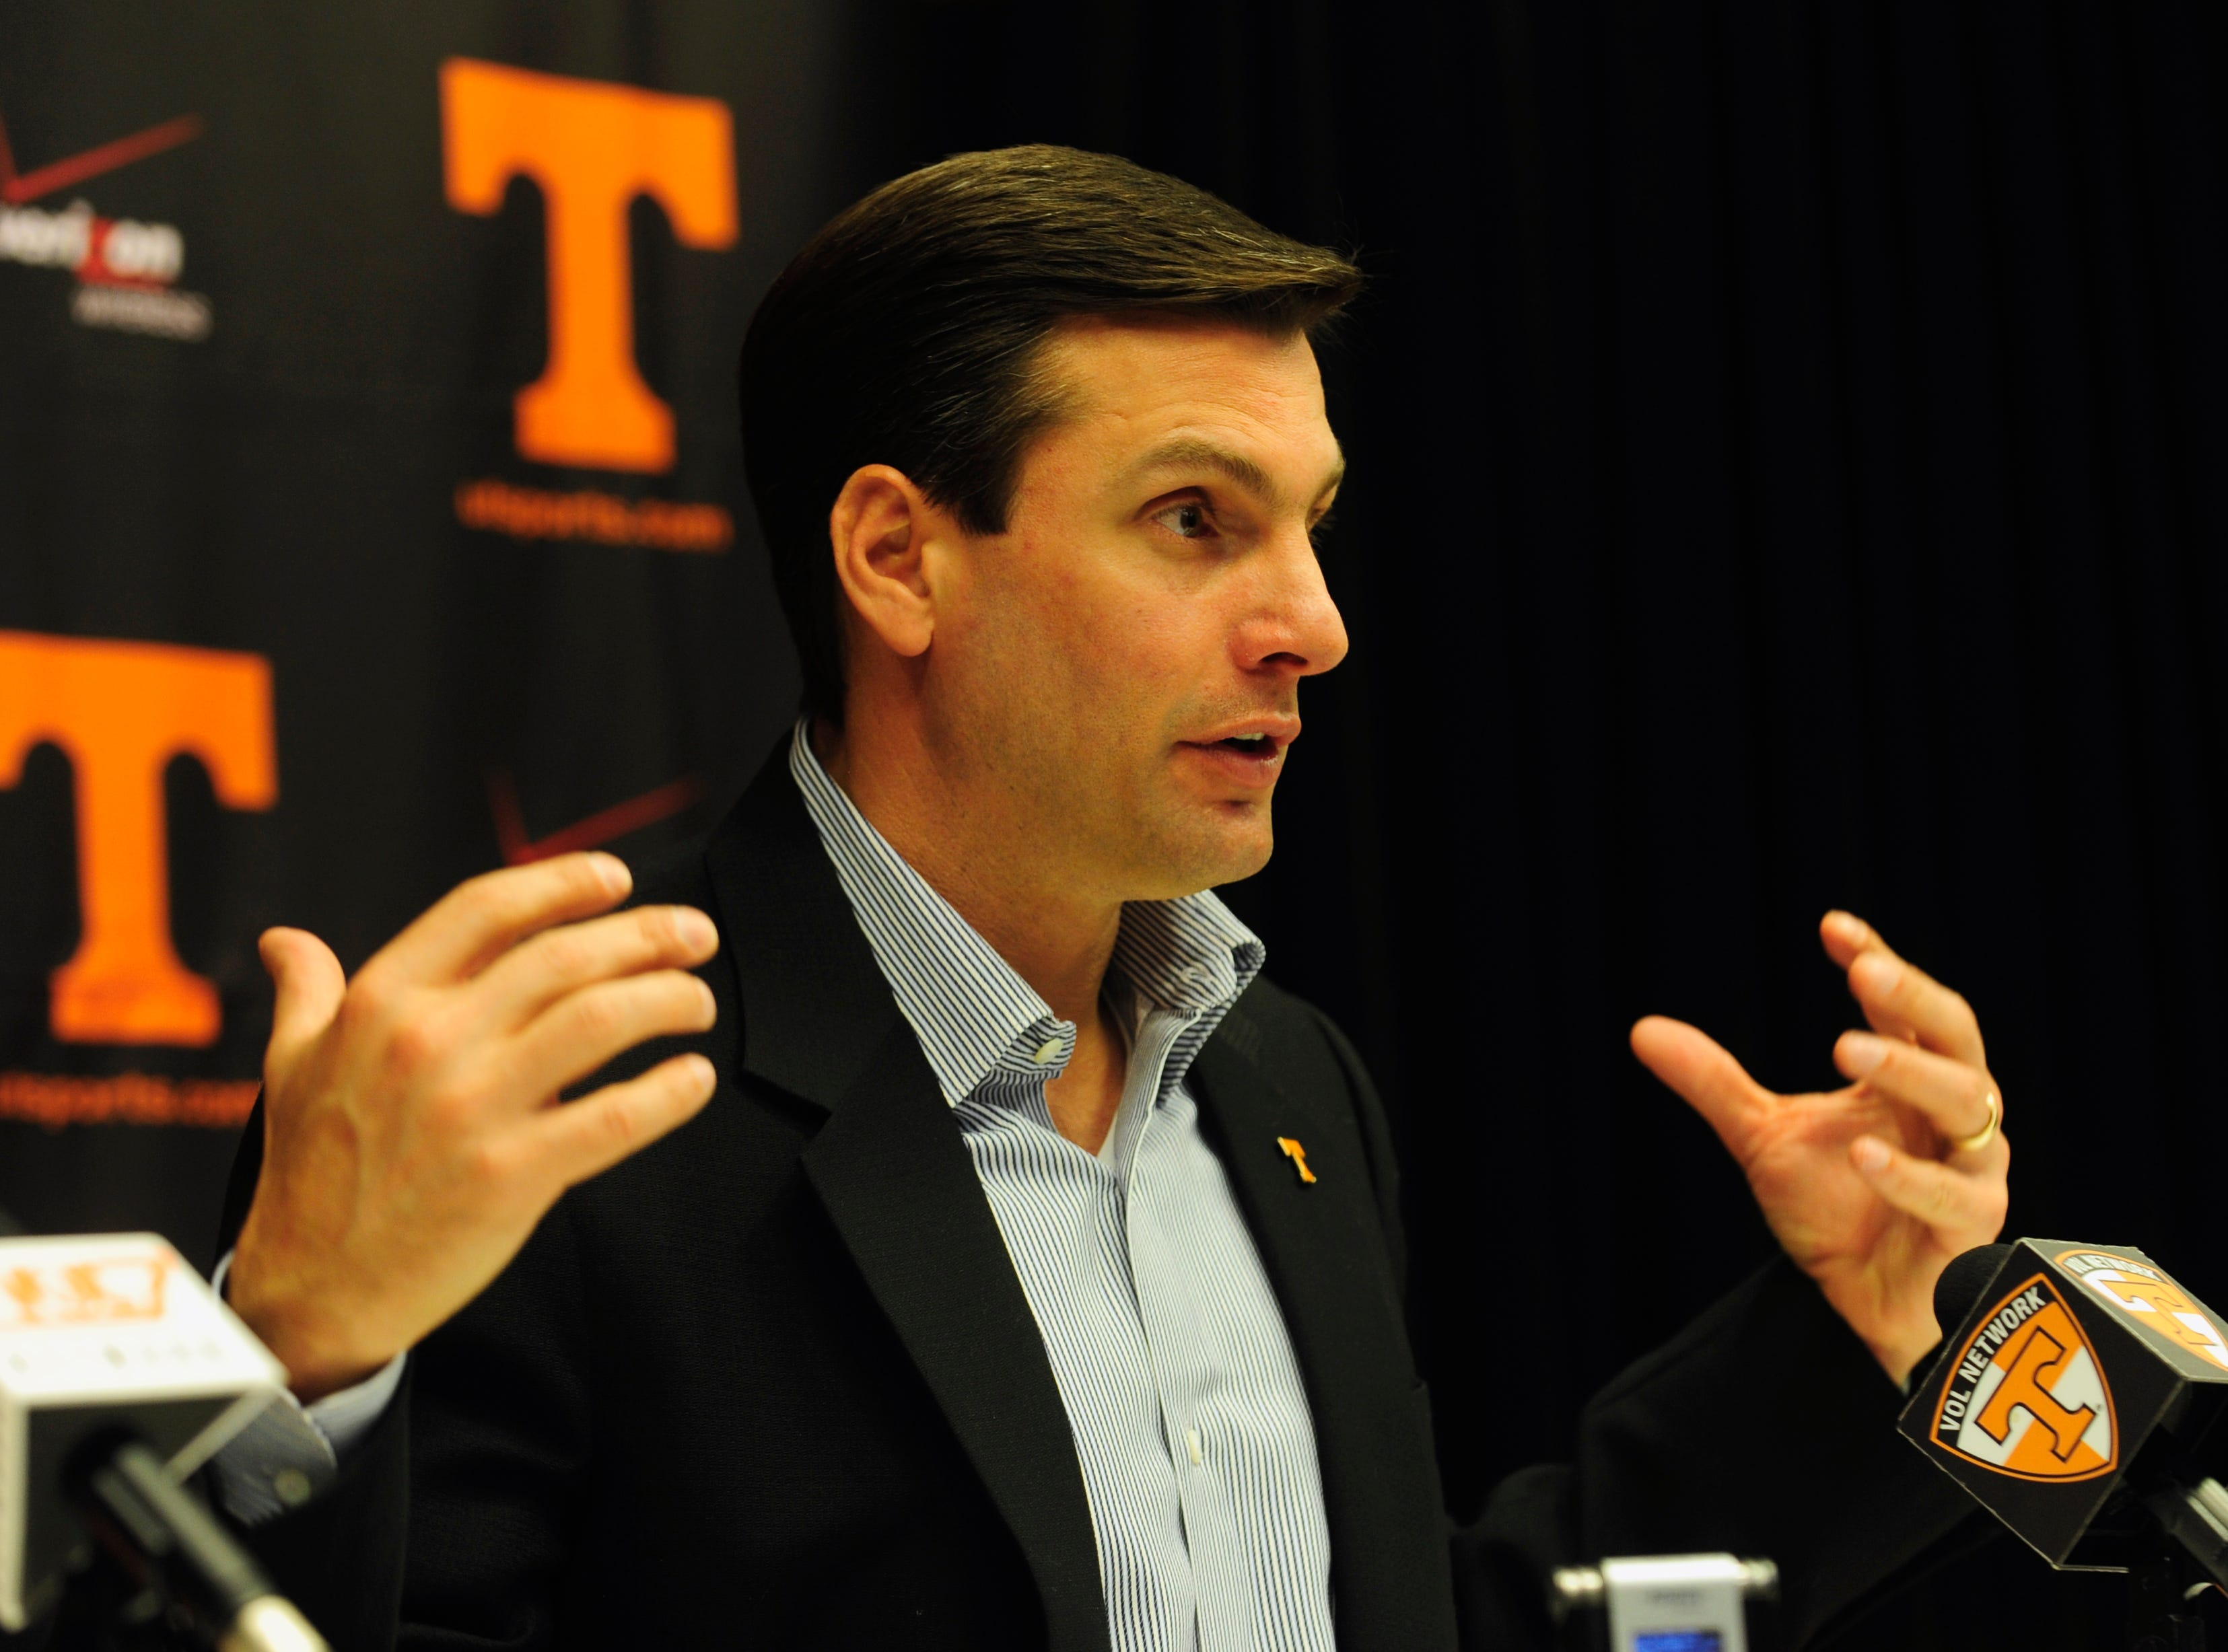 Tennessee head coach Derek Dooley during a press conference Wednesday, Mar. 17, 2010 .